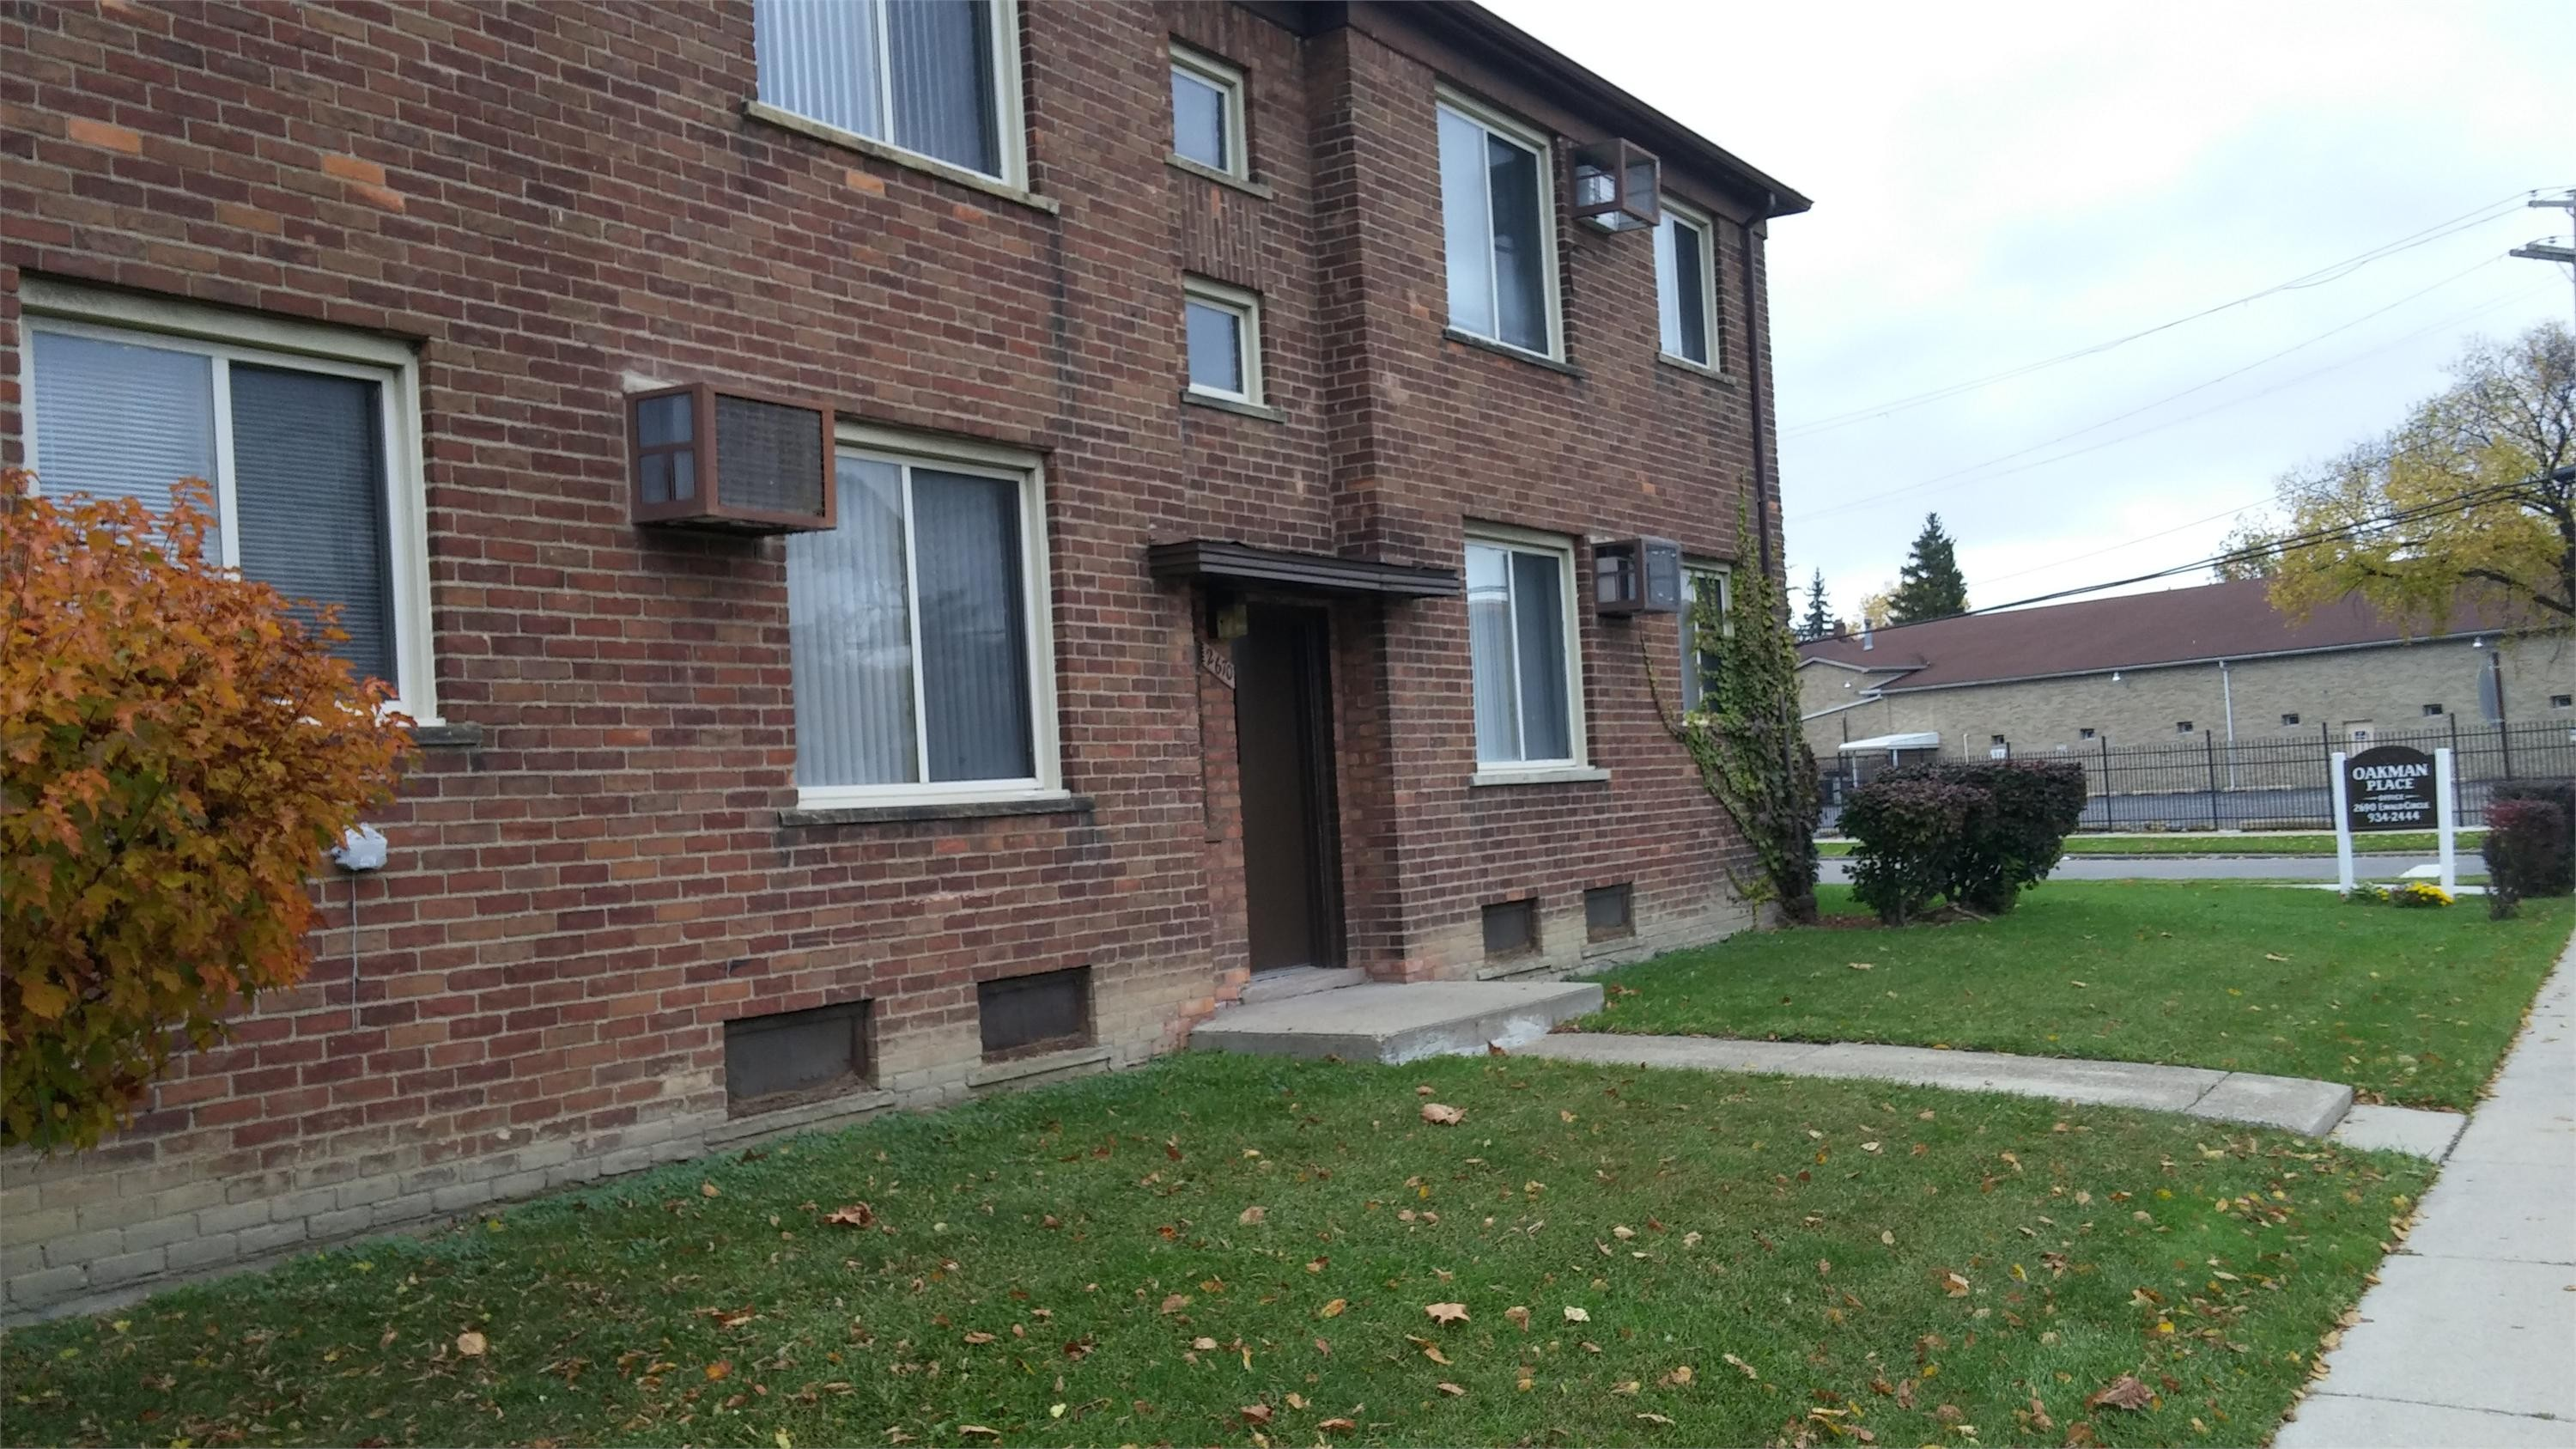 2670 Ewald Cir 40 Detroit Mi 48238 1 Bedroom Apartment For Rent Padmapper